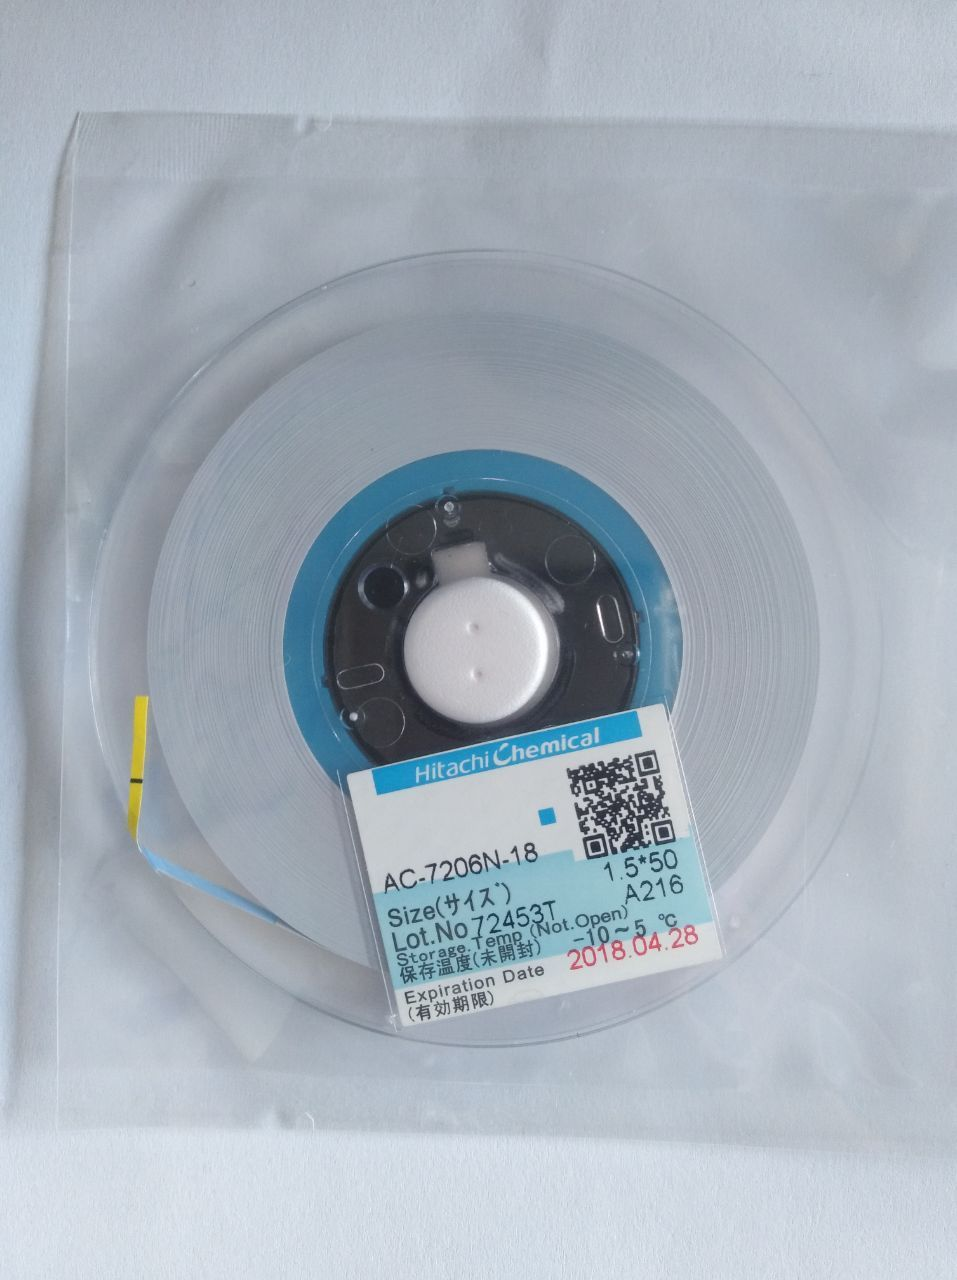 Hitachi ACF AC-7206N-18 LCD Screen Anisotropic Conductor Repair Tape 1.5mm*50M(Newest)